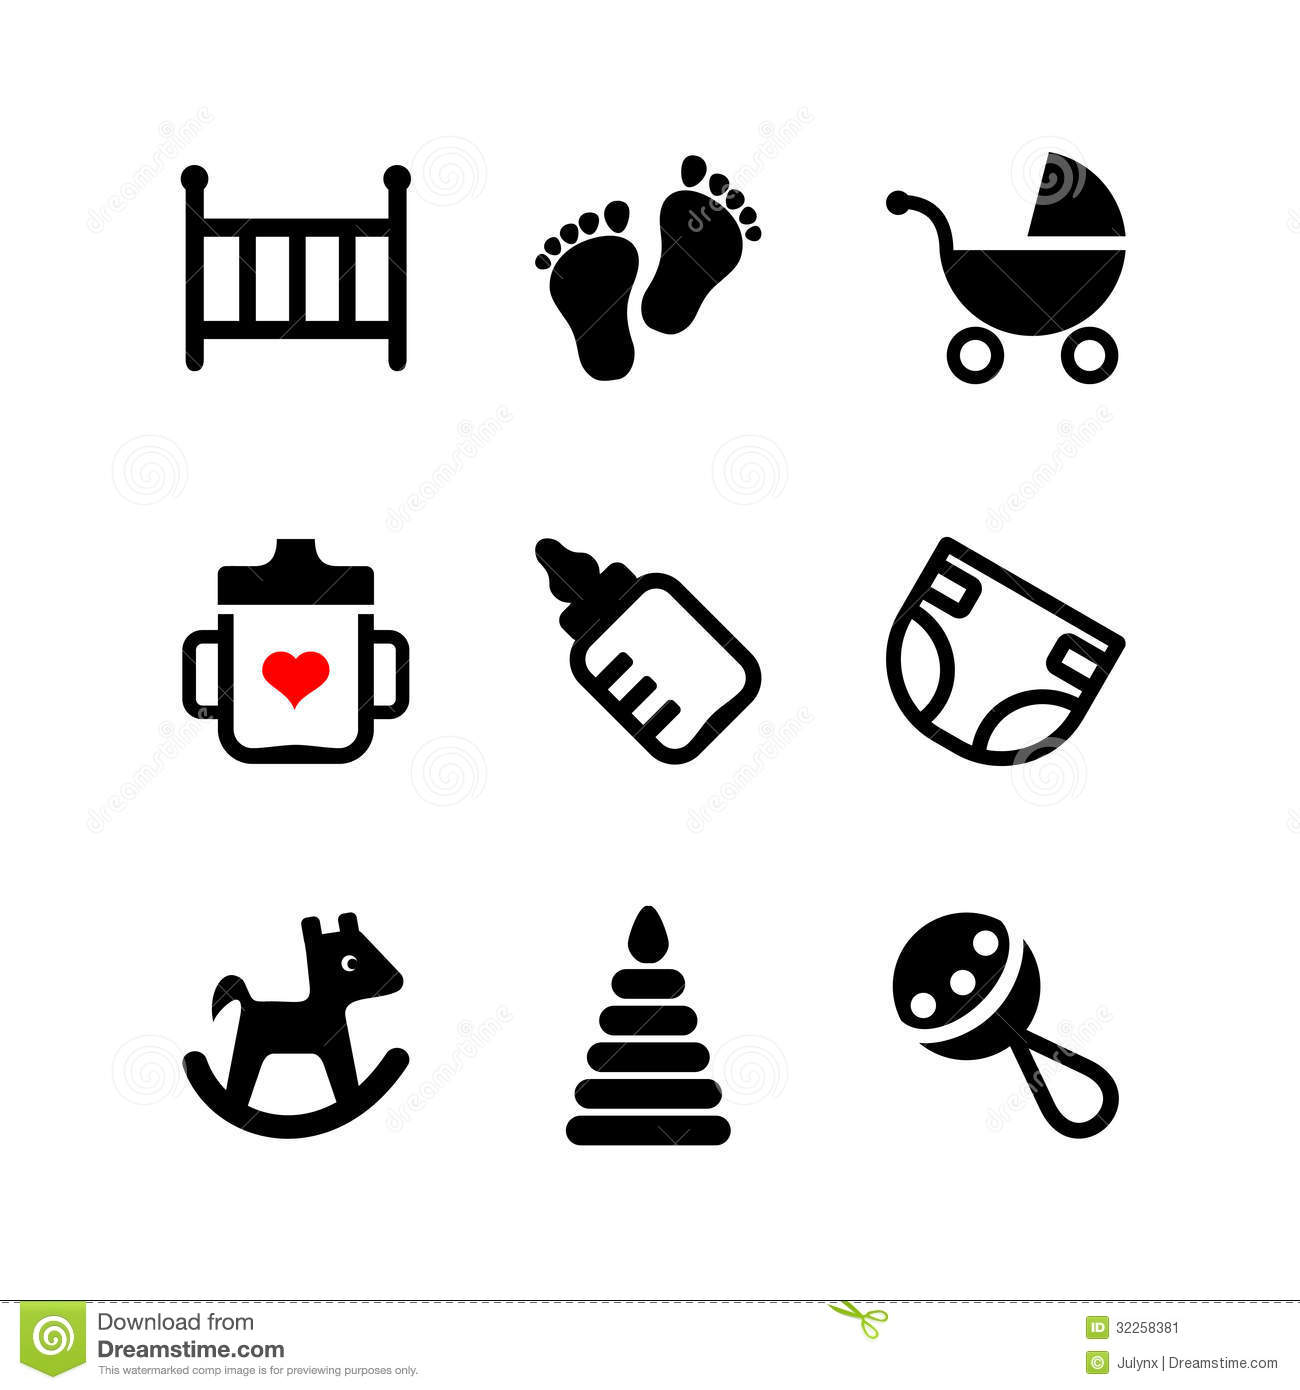 101508 Clothes Outline Icons likewise Stock Images Shut Up Illustration Character Hand Over Mouth Image30733484 in addition Sandwich Pictures also Stock Photo Silhouette Pregnant Woman Image23991960 in addition Snips And Snails And Puppy Dog Tails. on baby vector graphics